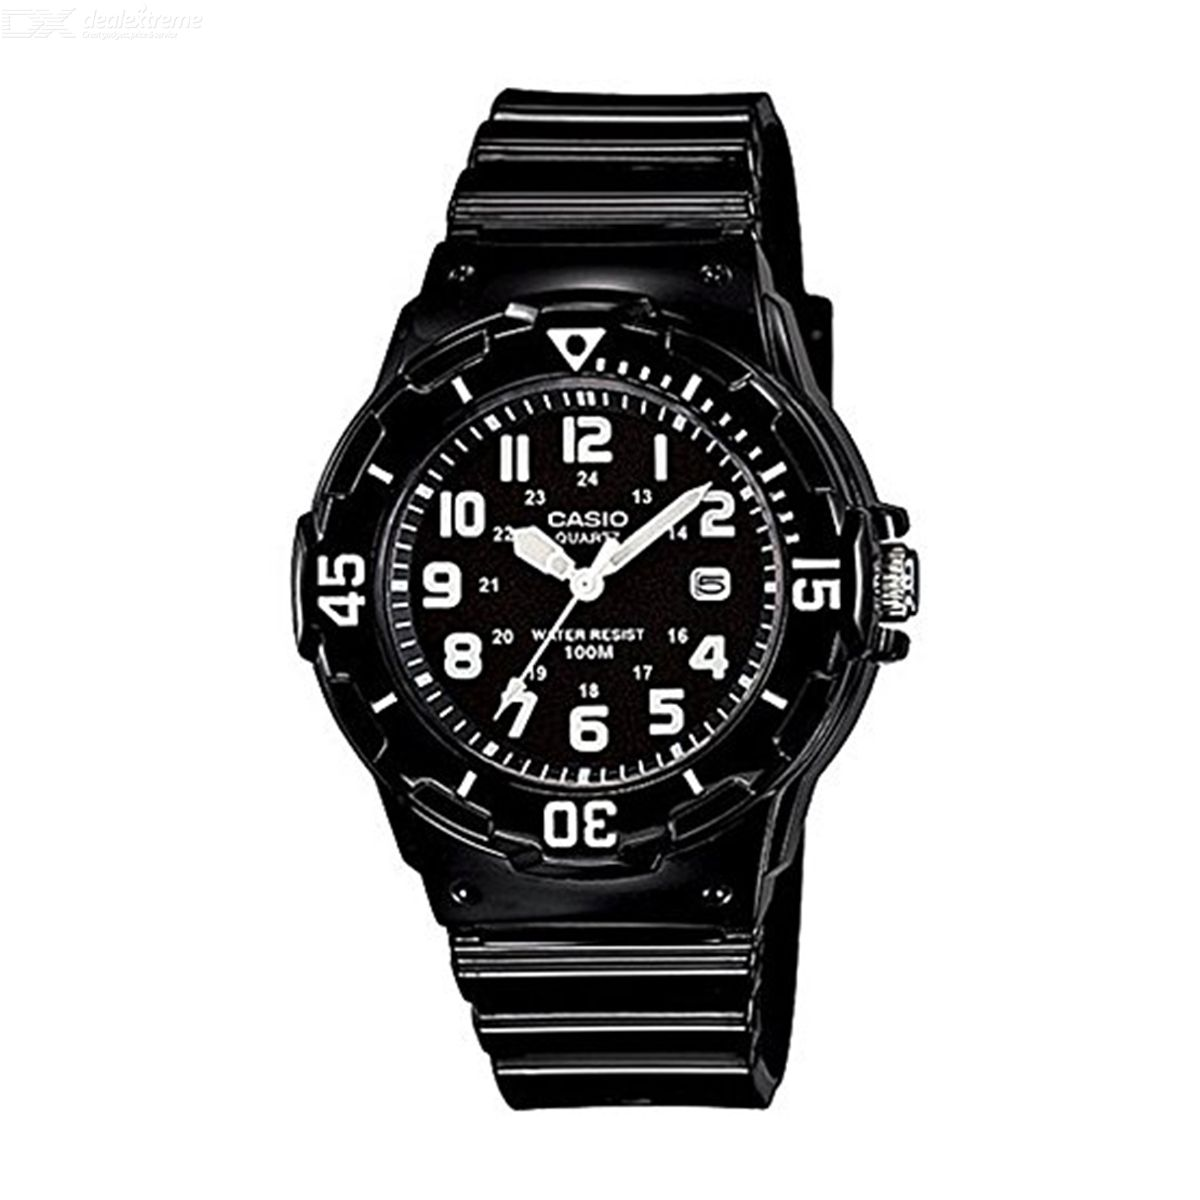 Casio LRW-200H-1B Sports Wrist Watch - Black (Without Box)